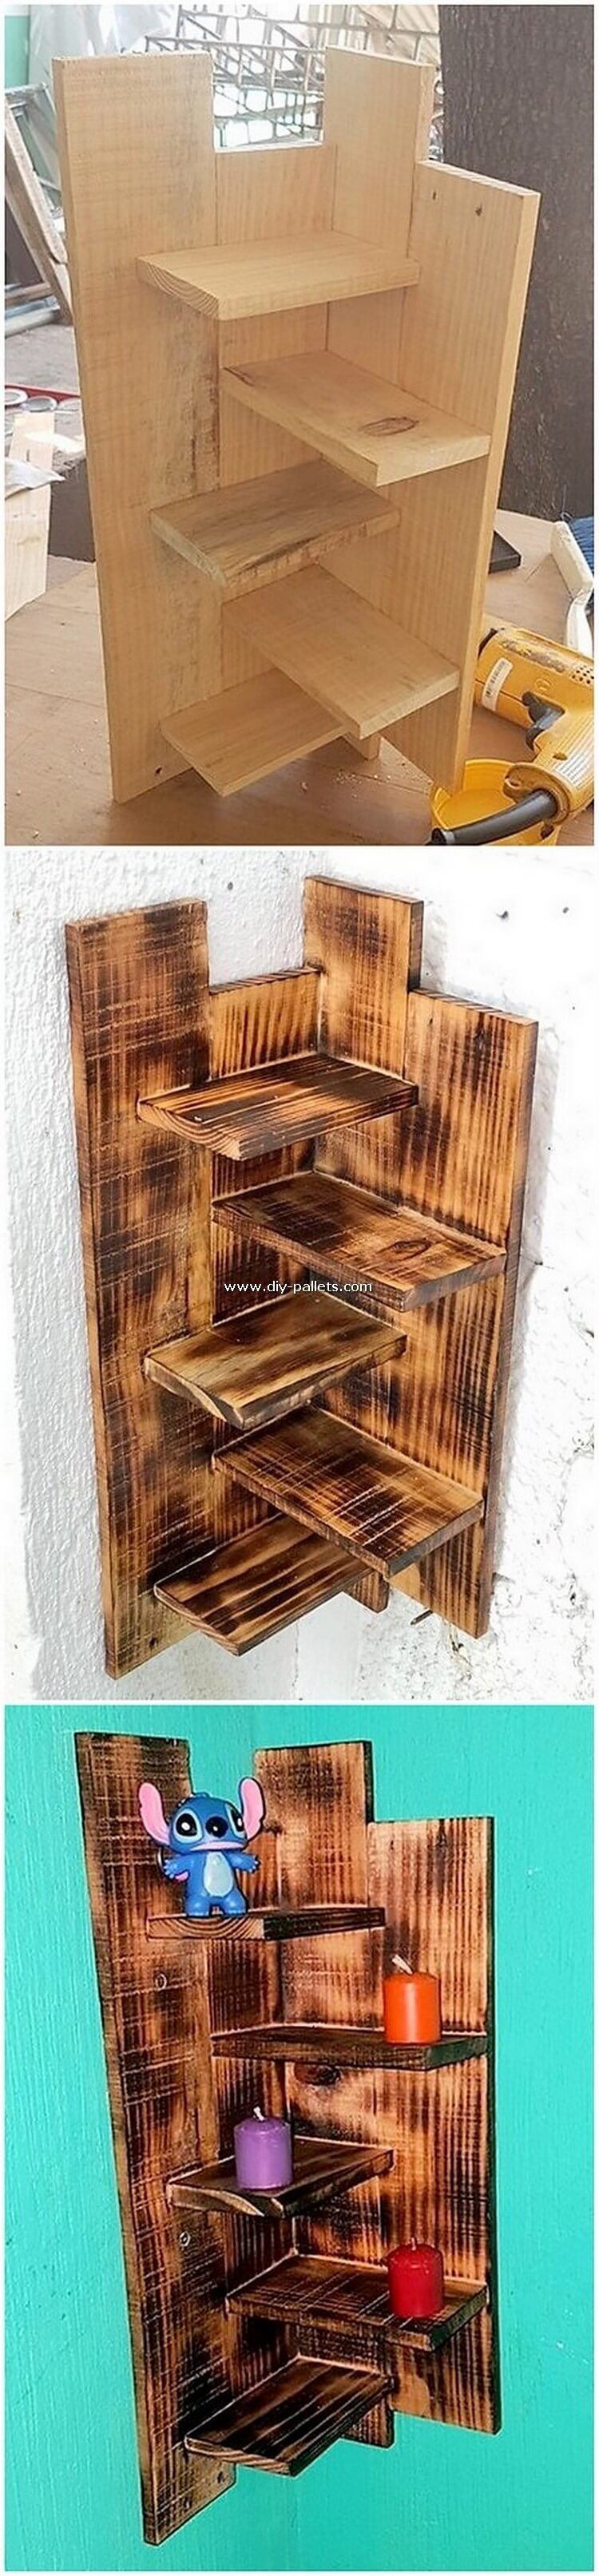 Pallet Corner Wall Shelf